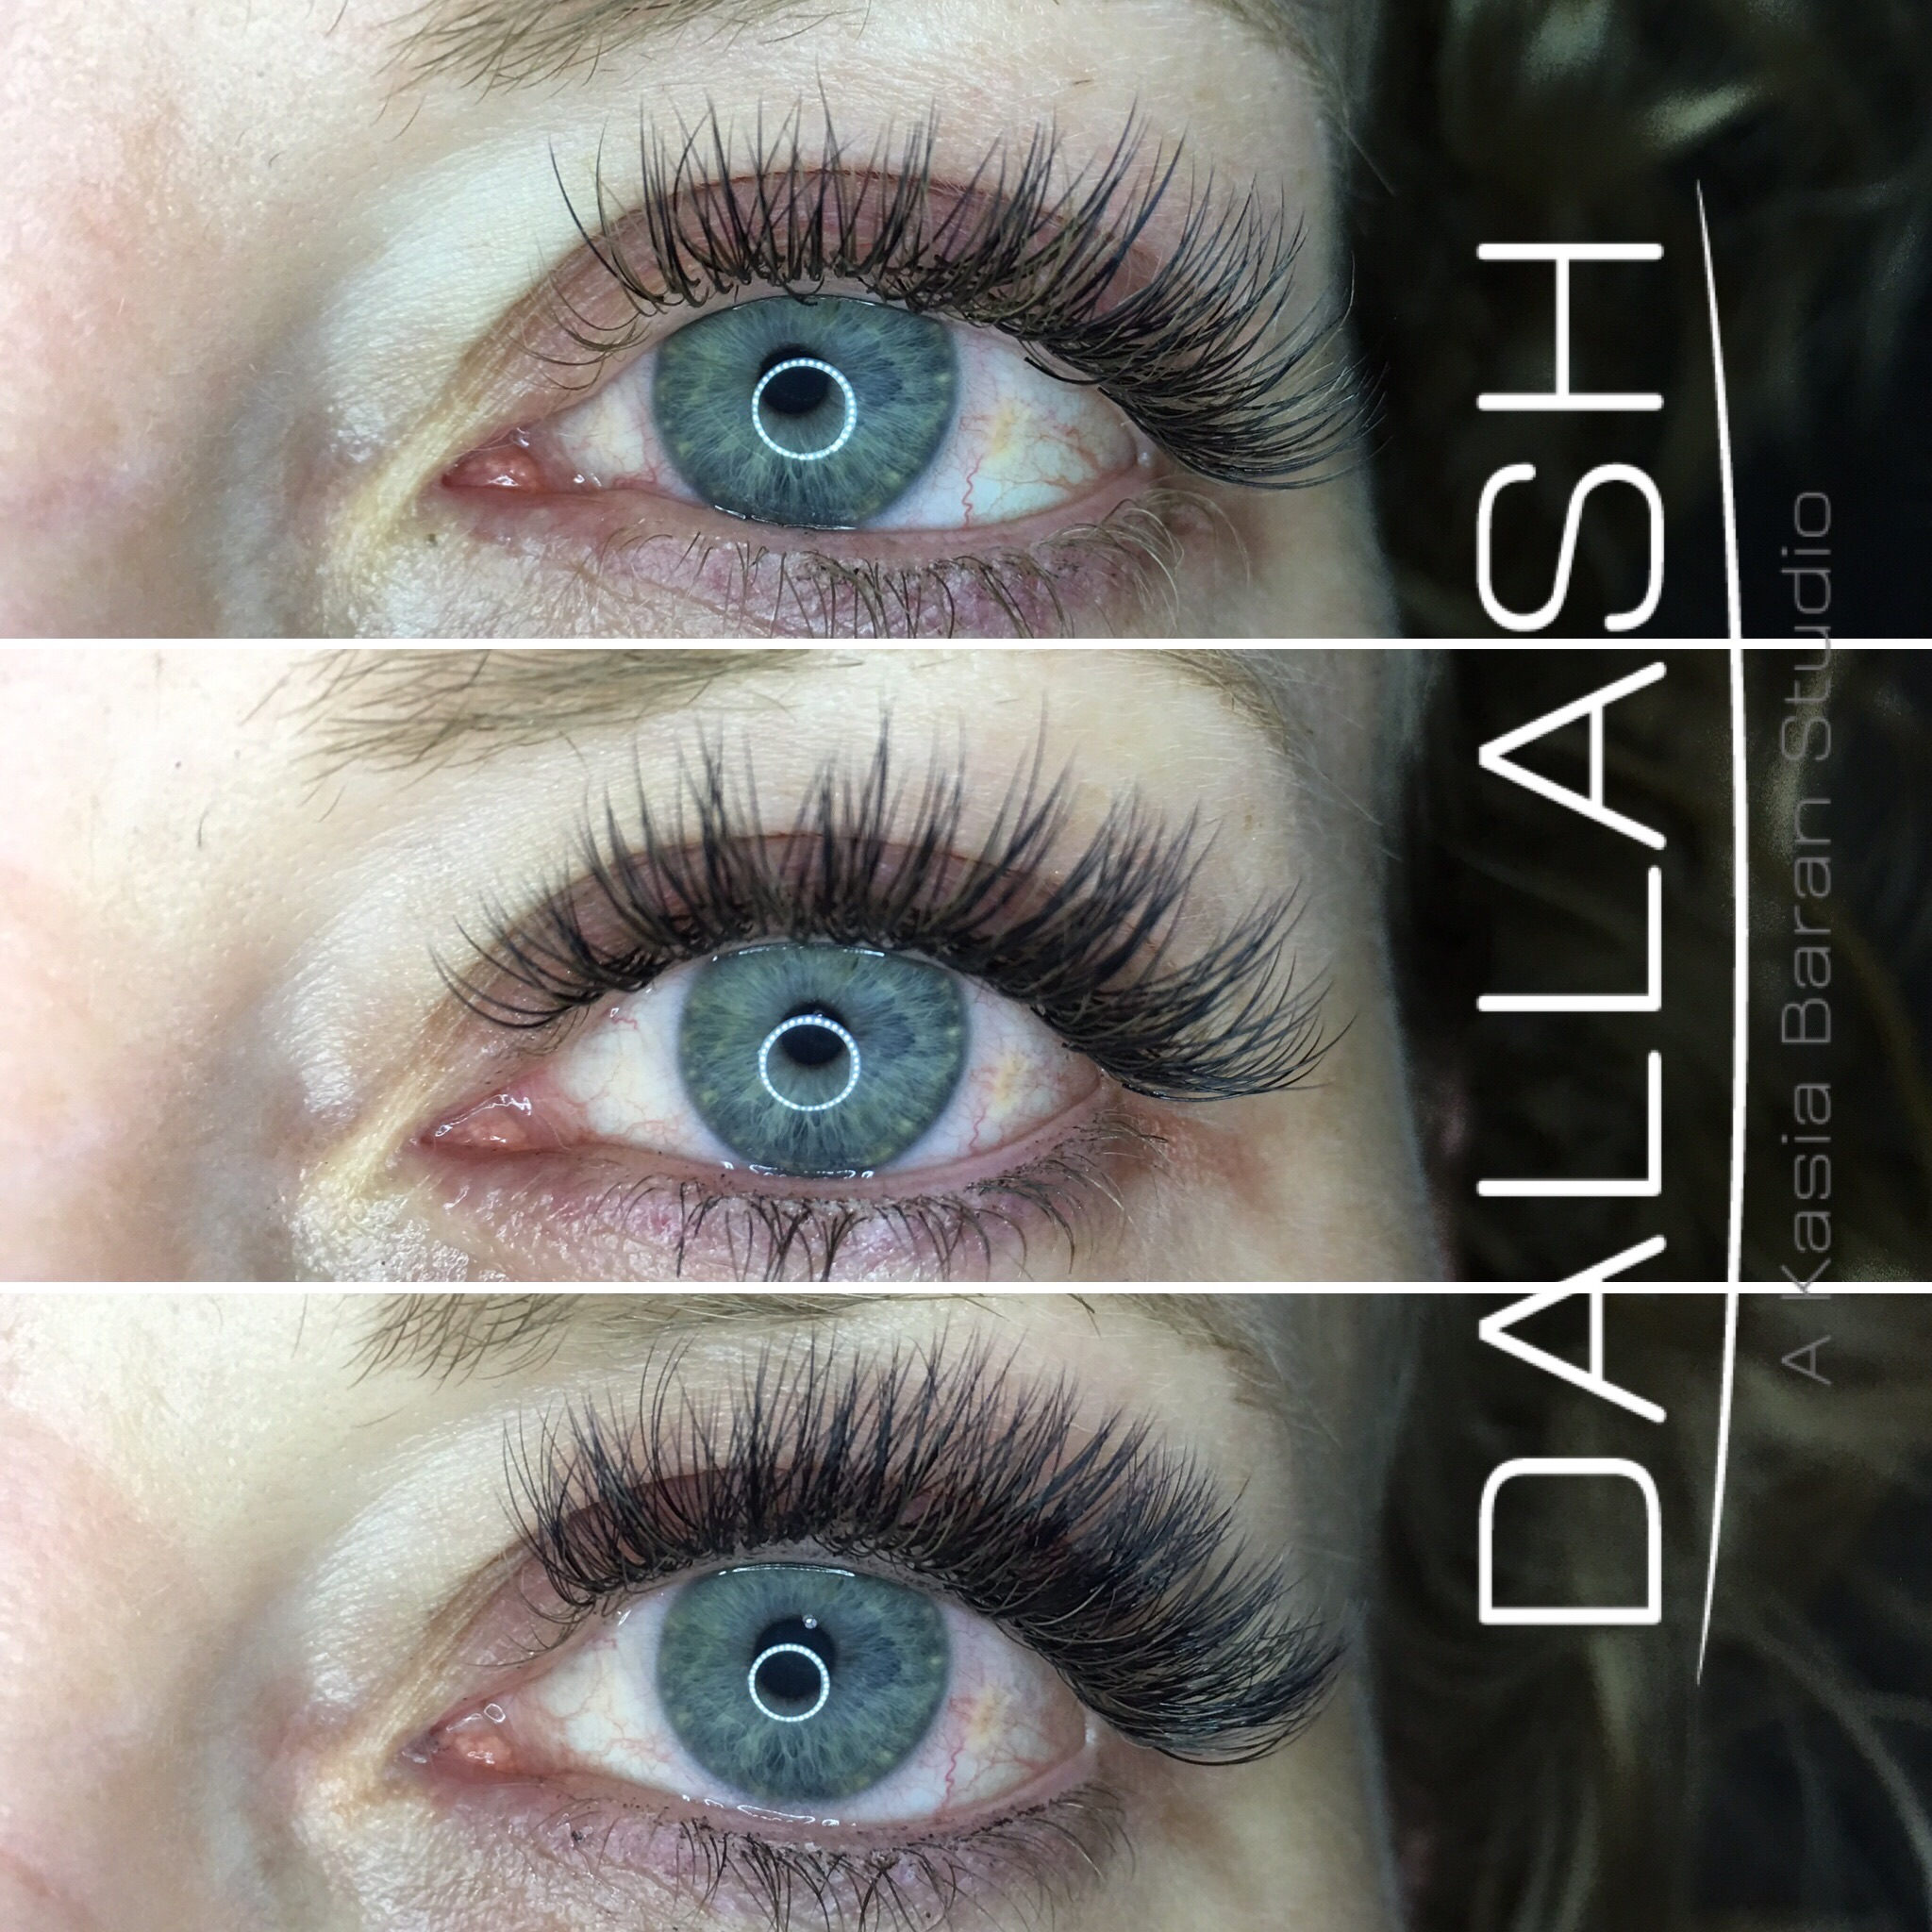 CLASSIC TO VOLUME LASHES TRANSISION